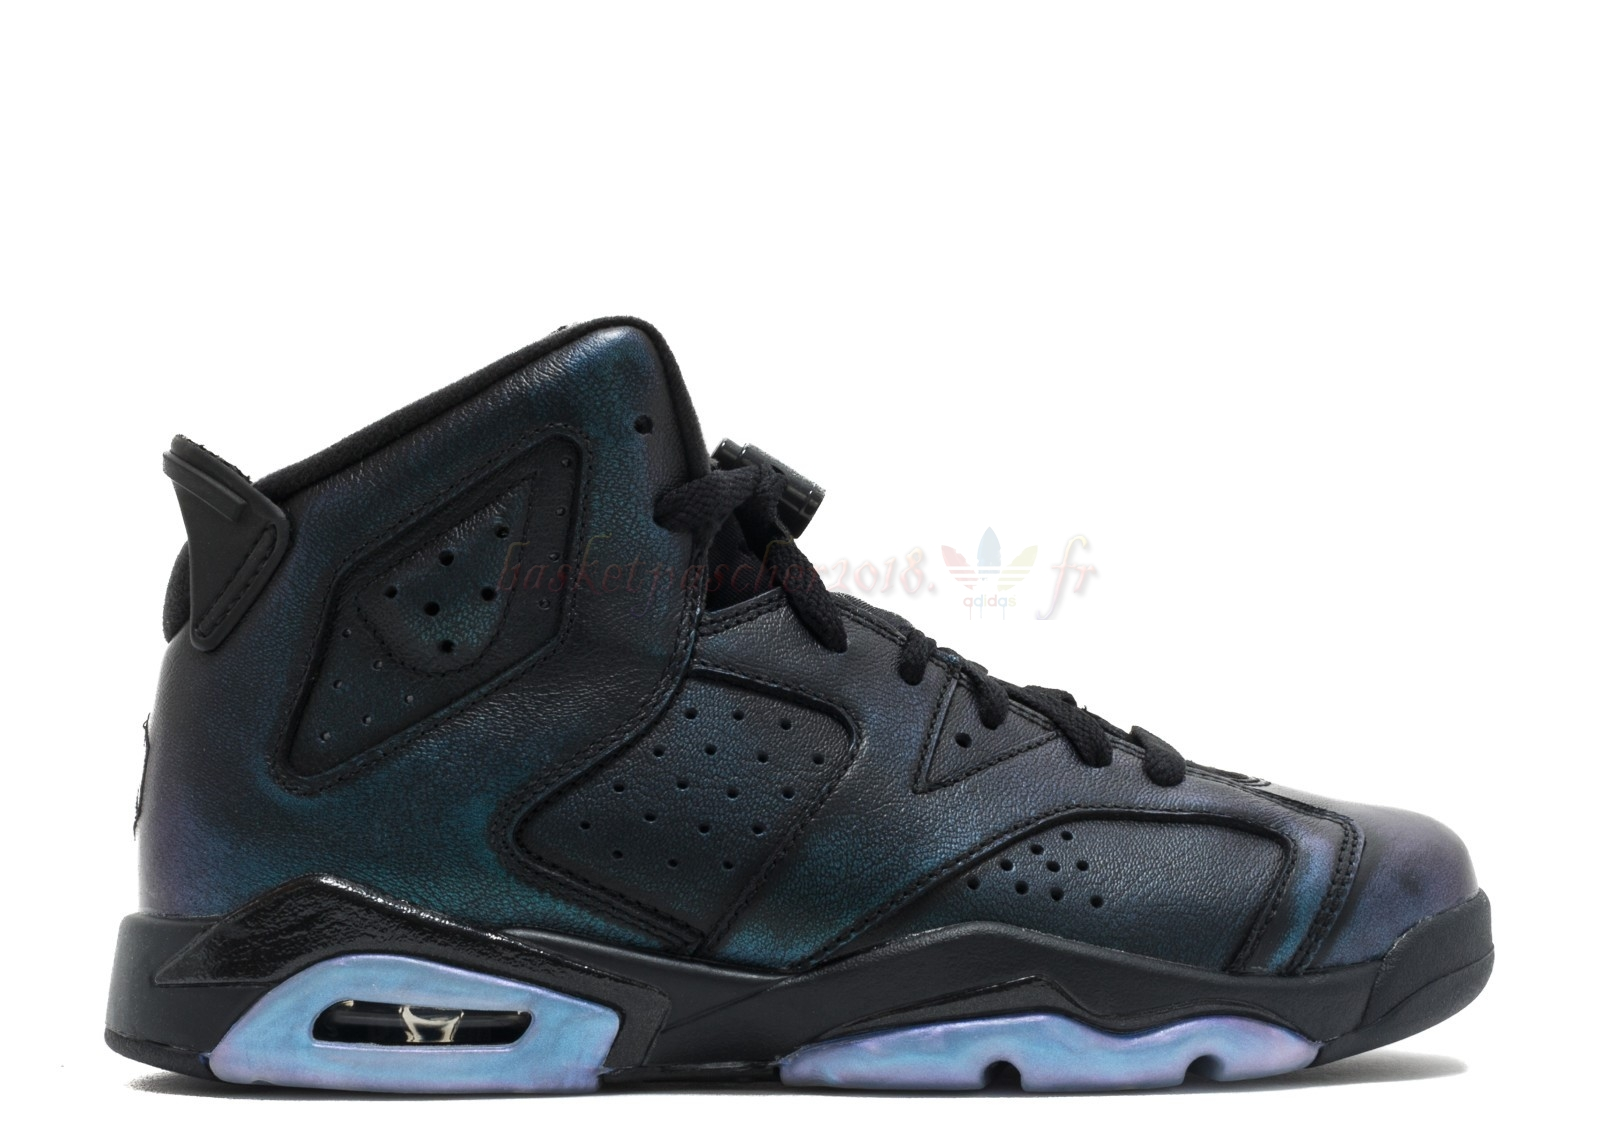 "Vente Chaude Chaussures De Basketball Femme Air Jordan 6 Retro As (Gs) ""All Star"" Noir (907960-015) Pas Cher"